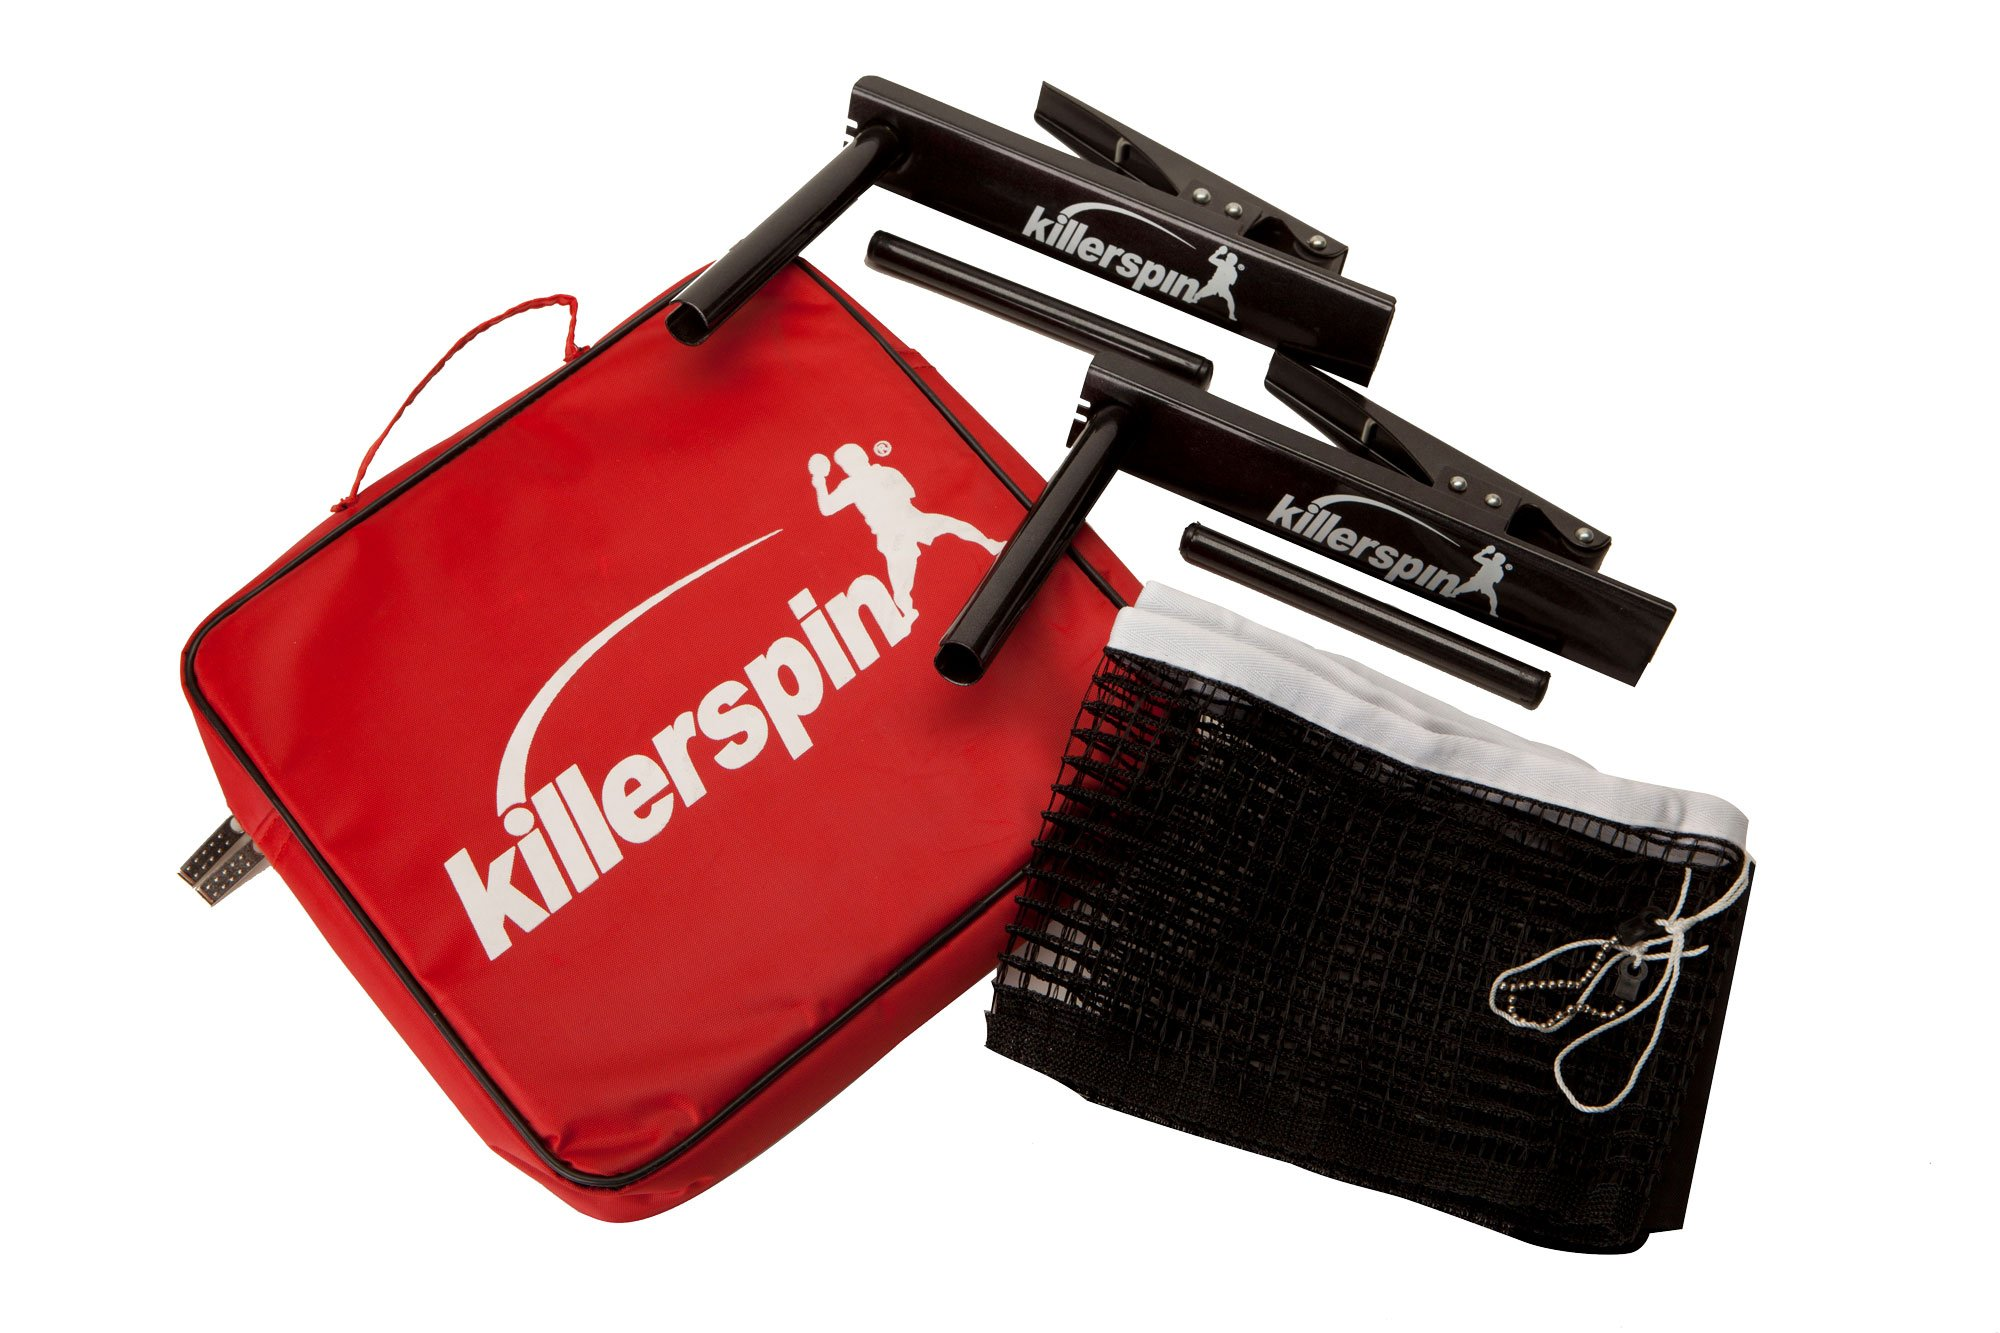 Killerspin Table Tennis Clip-On Net & Post Set, Definitely The Easiest Net & Post Set to Assemble Black, Fits Most Standard Table Tennis Tablesup to A Table Width of 1''